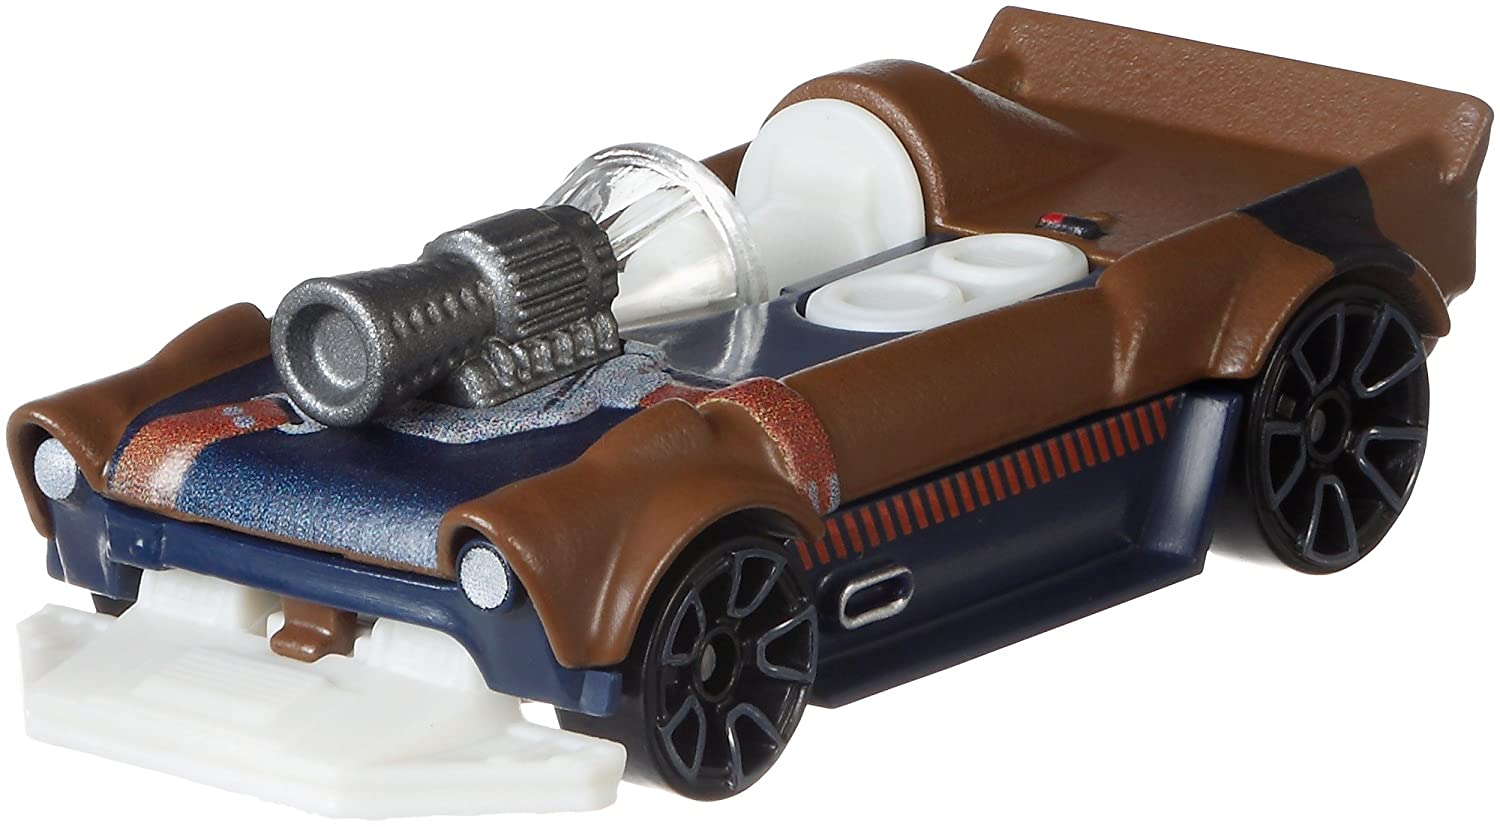 Hot Wheels Star Wars Character Car by Mattel Han Solo The Force Awakens